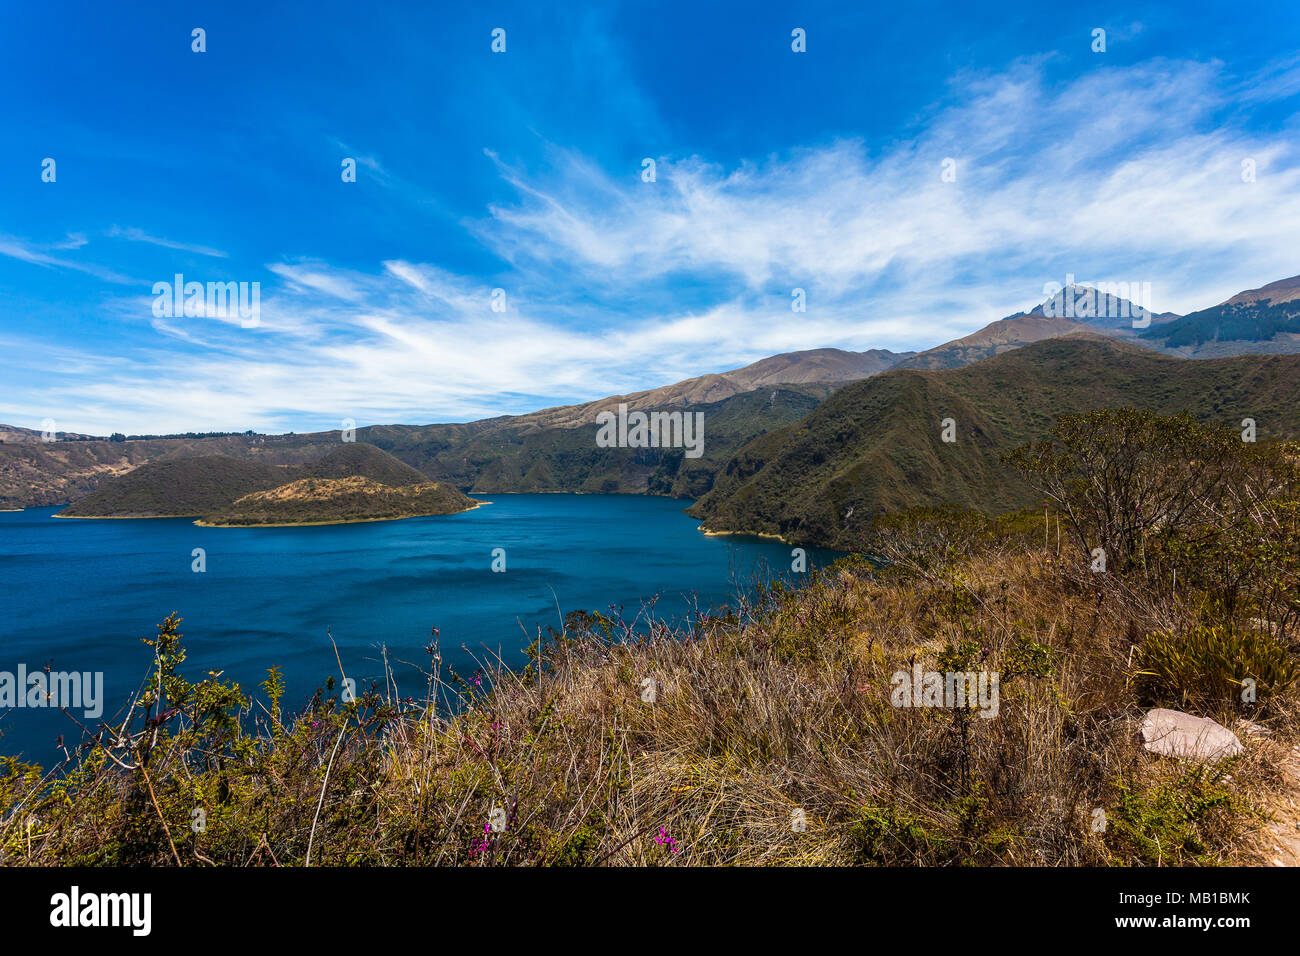 Cuicocha lagoon inside the crater of the volcano Cotacachi Stock Photo